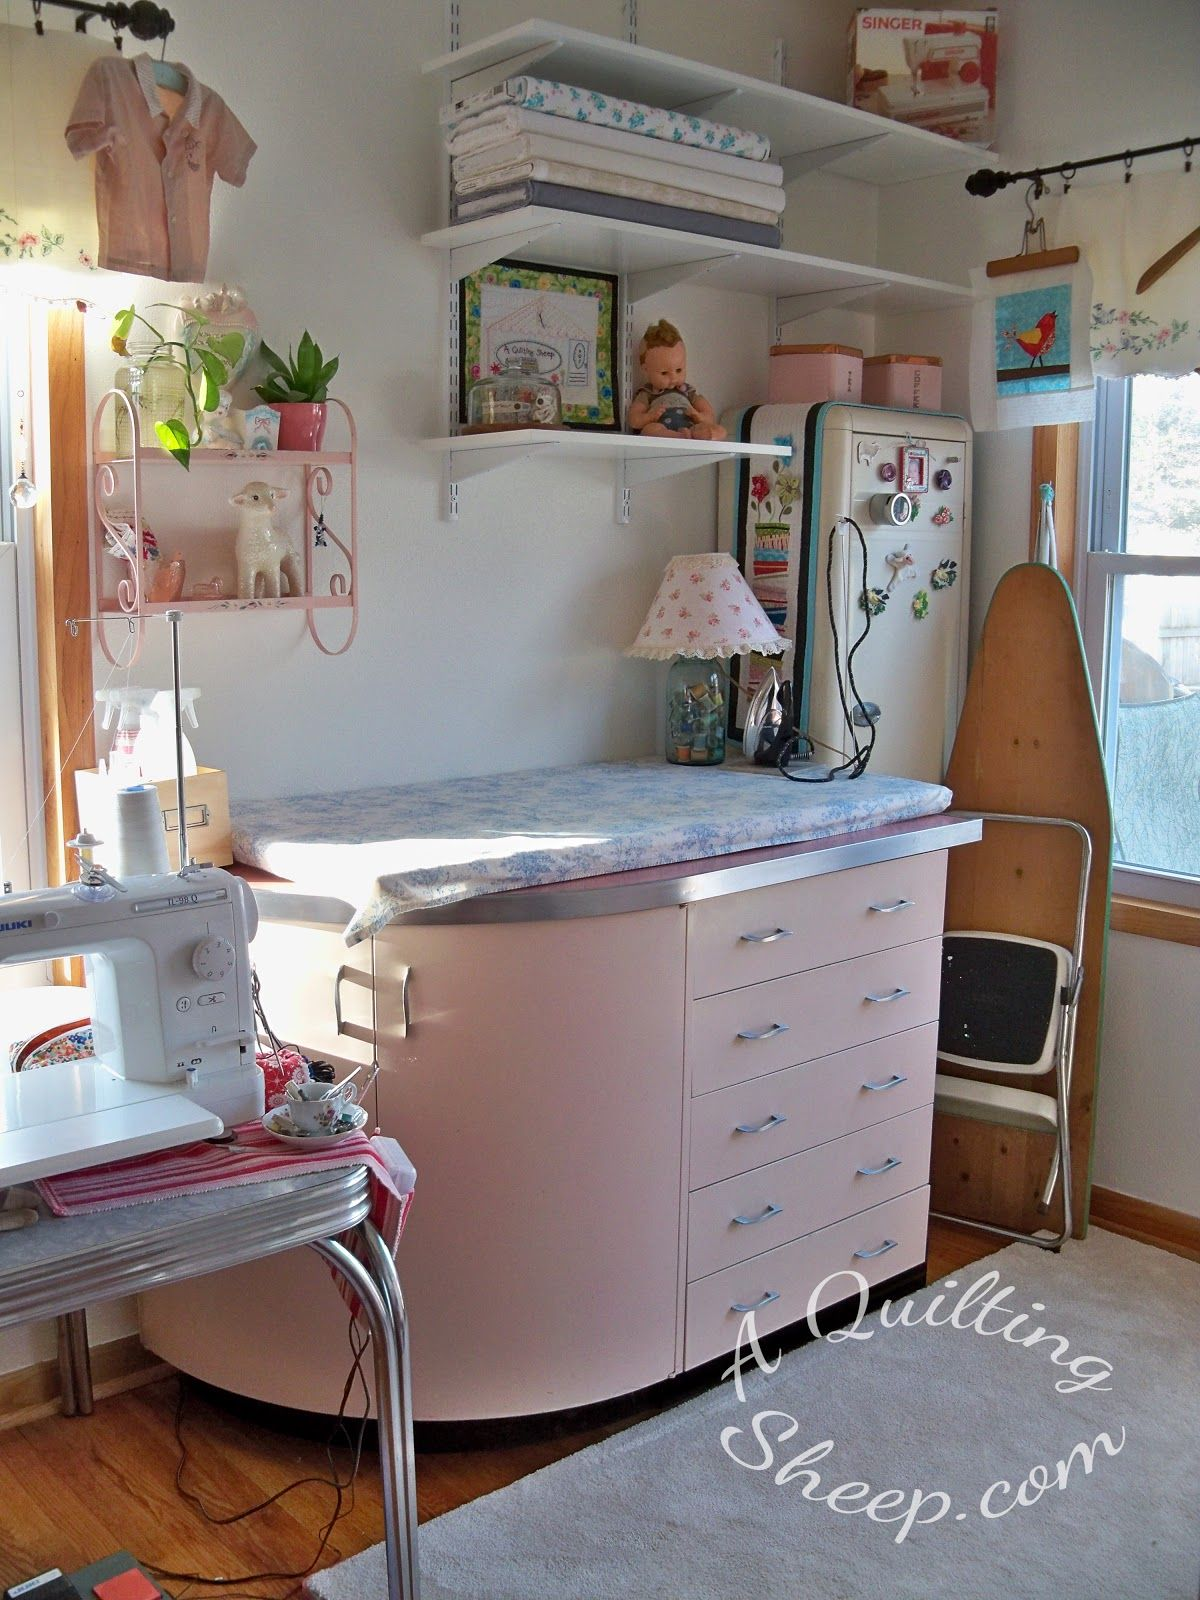 Designing A Sewing Room: Sewing Room Design, Sewing Room